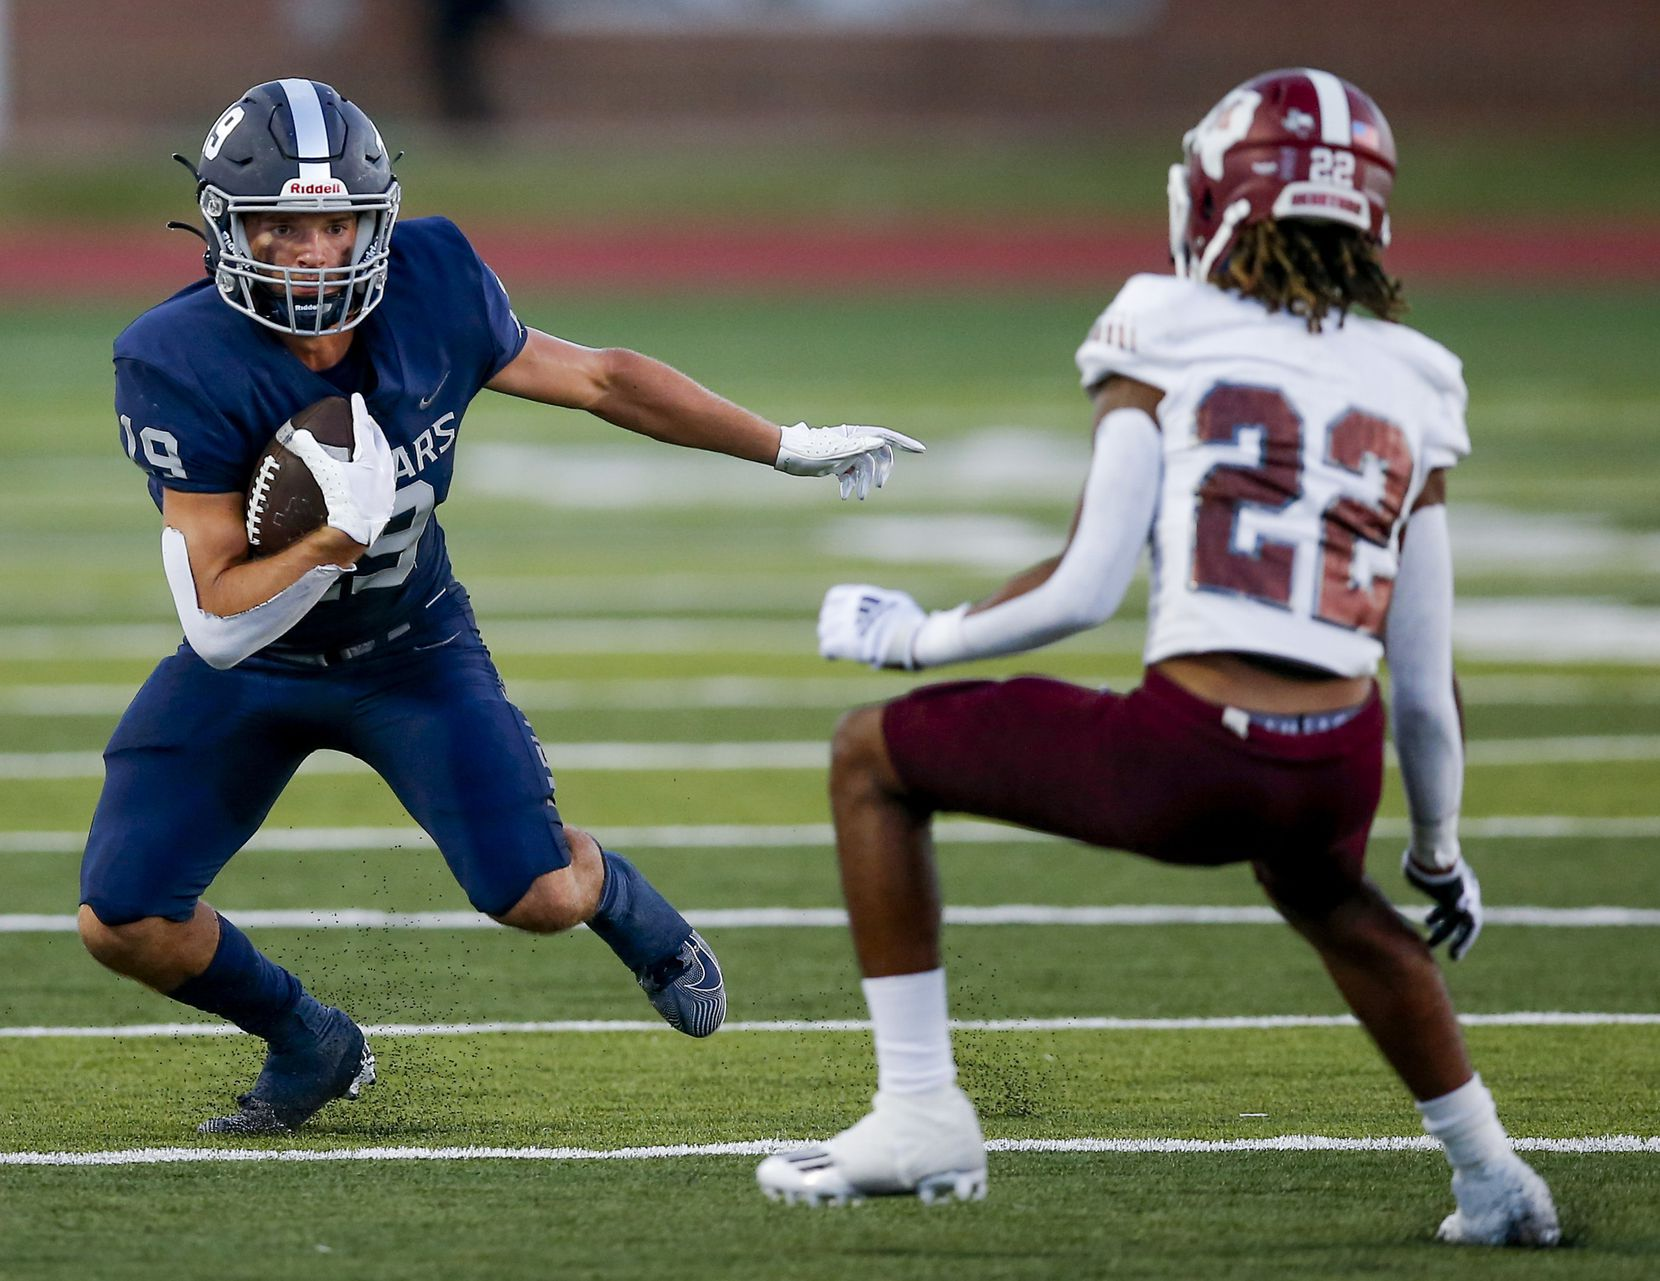 Flower Mound senior wide receiver Cade Edlein (19) looks for room against Mesquite junior defensive back Dalton Martin (22) during the first half of a high school football game at Flower Mound High School, Friday, August 27, 2021. (Brandon Wade/Special Contributor)